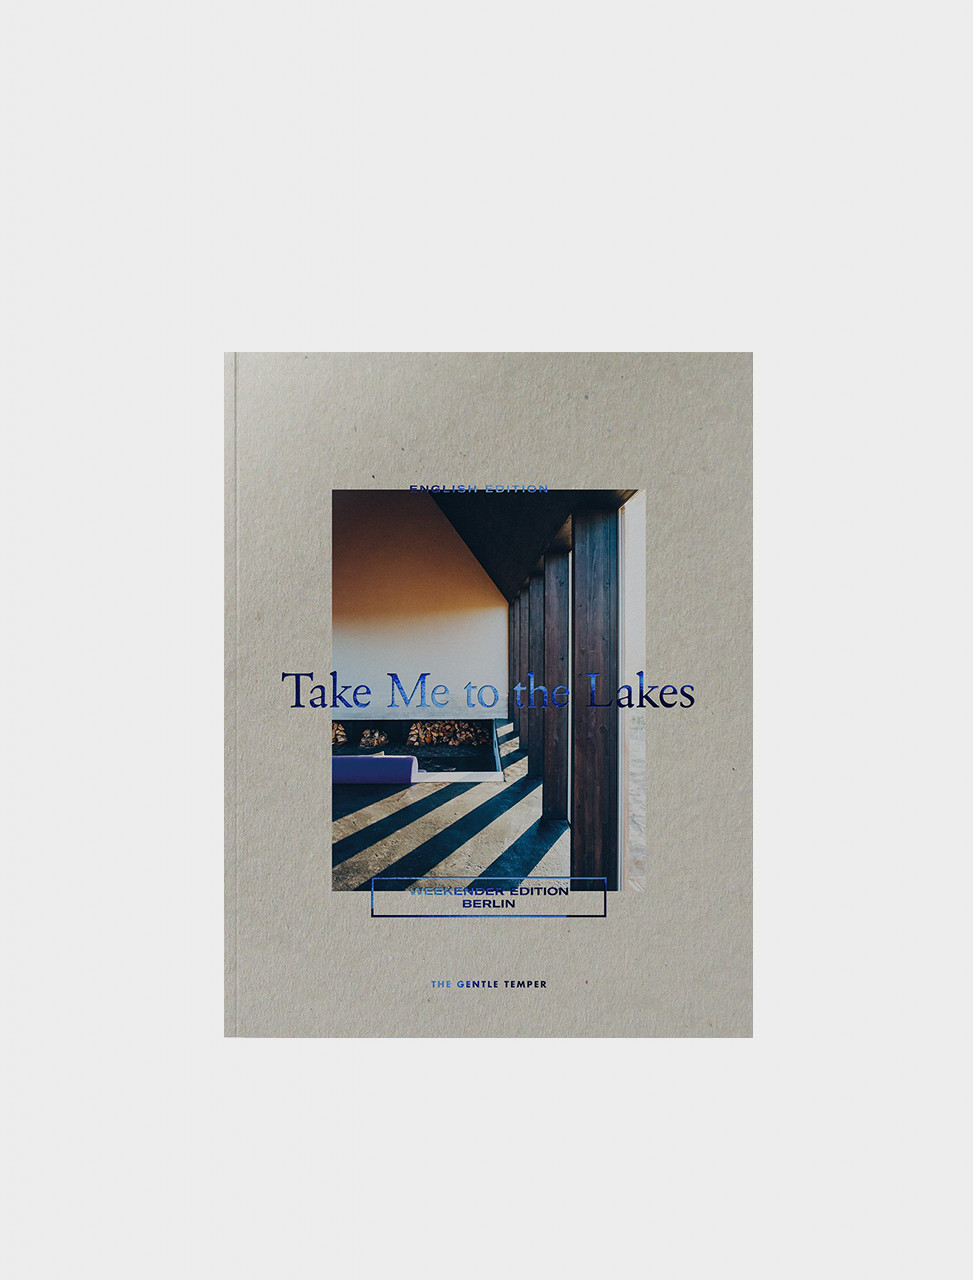 Take Me to the Lakes - Weekender Edition Berlin - English Language